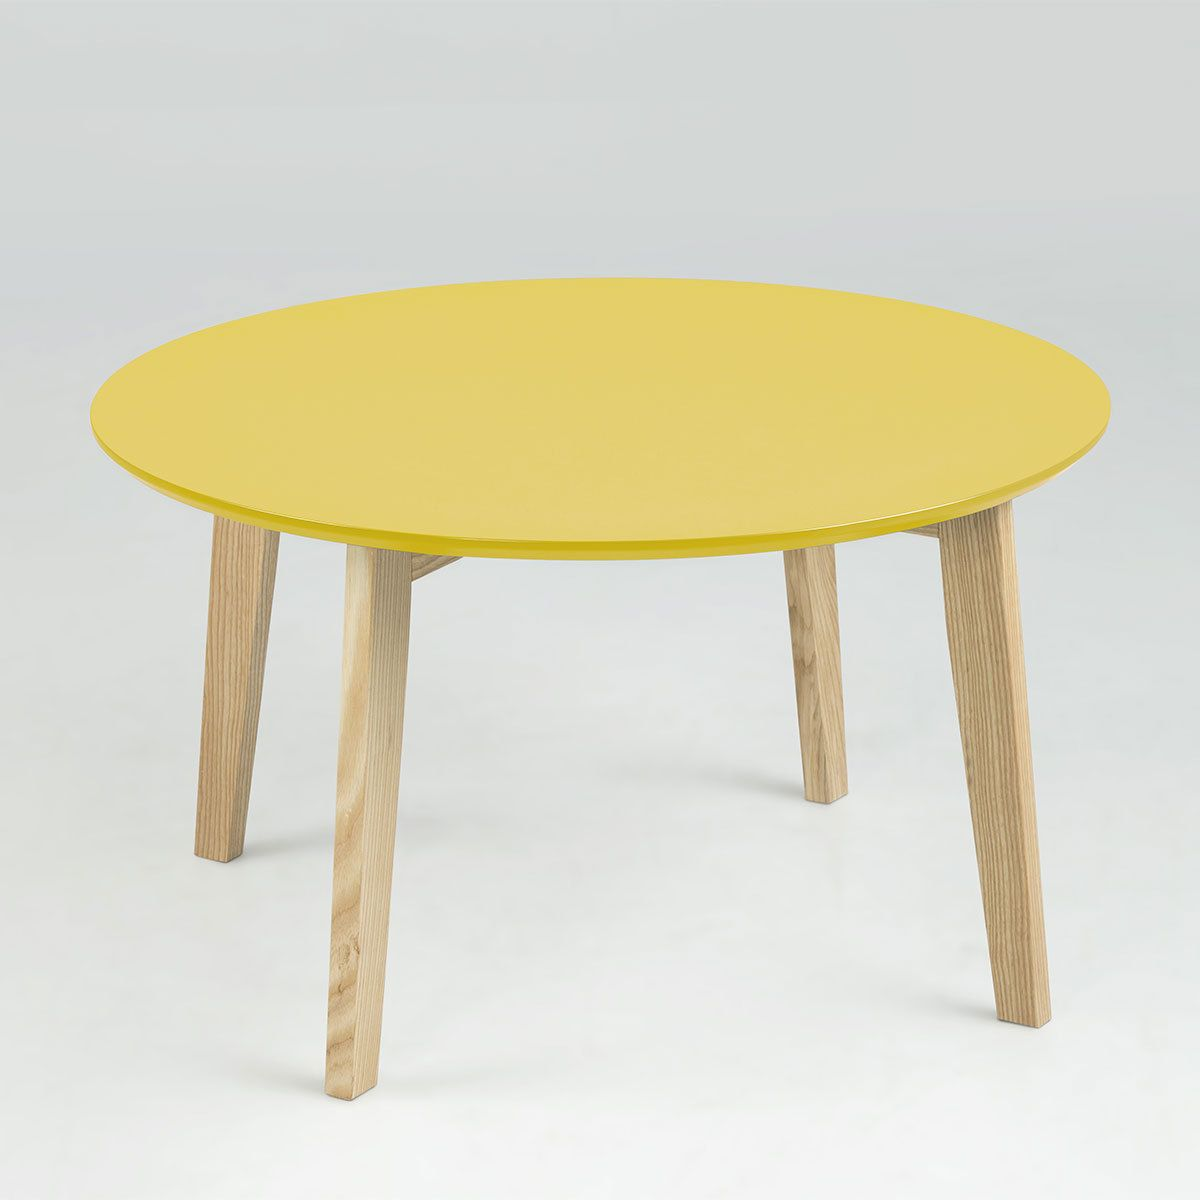 Table Ronde 80 Cm Conforama Table Basse Table Basse Ronde Lemon Curry 80 Cm Table